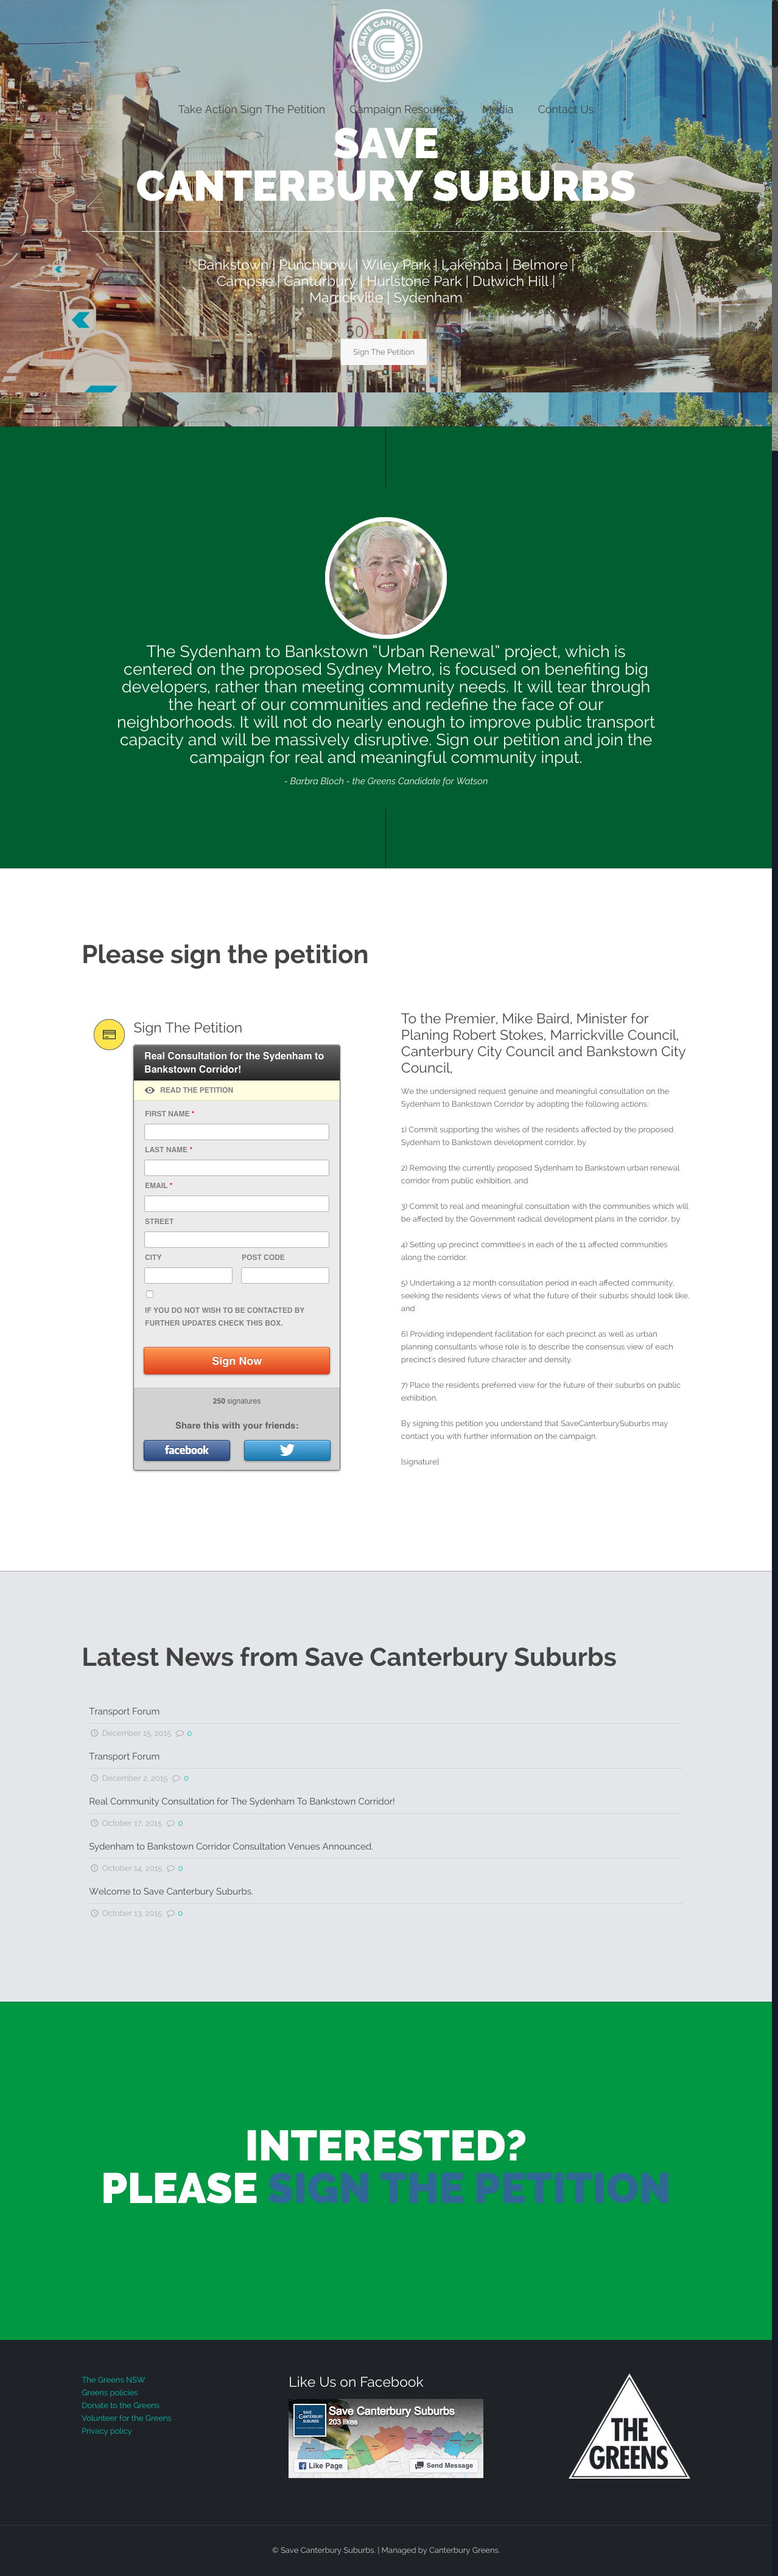 Save Canterbury Suburbs